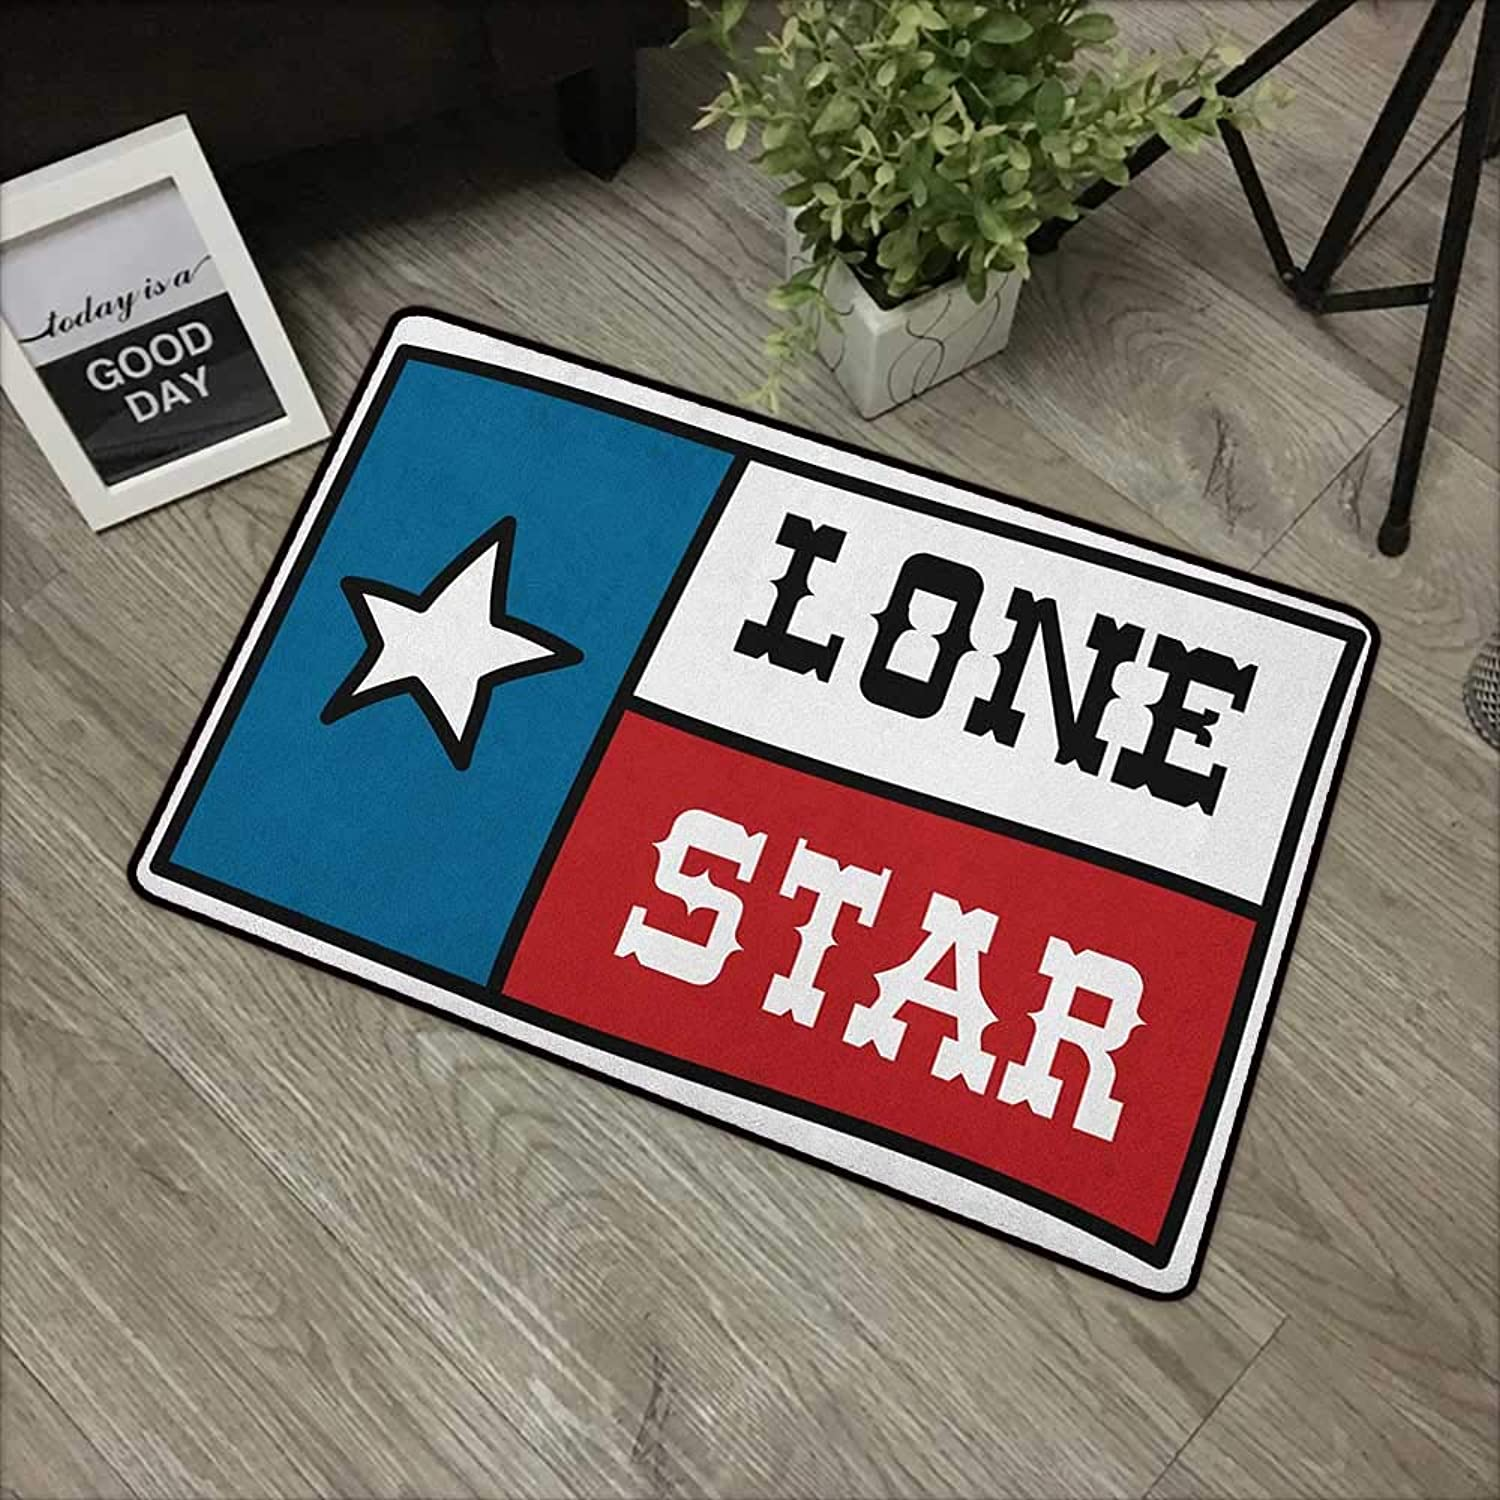 Bathroom Door mat W35 x L59 INCH Texas Star,Lone Star Flag United States of America Themed Patriotic Design, Cobalt bluee Ruby White Easy to Clean, Easy to fold,Non-Slip Door Mat Carpet